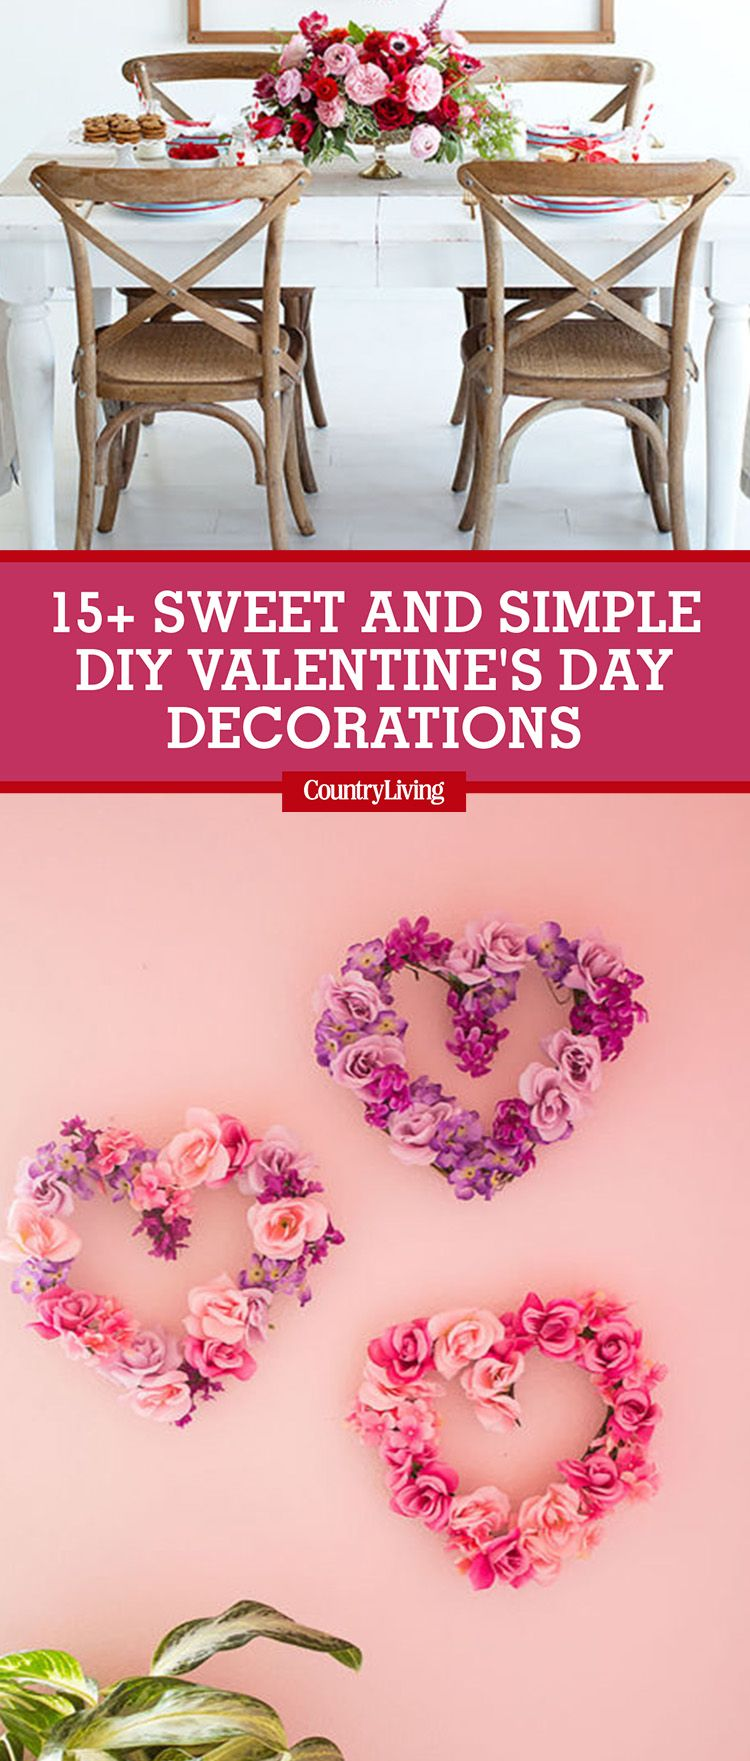 there for valentines romantic diy and garlands pincher from wreaths are decor penny best the prudent s with ideas these set over valentine to mood decorations day mantel creative